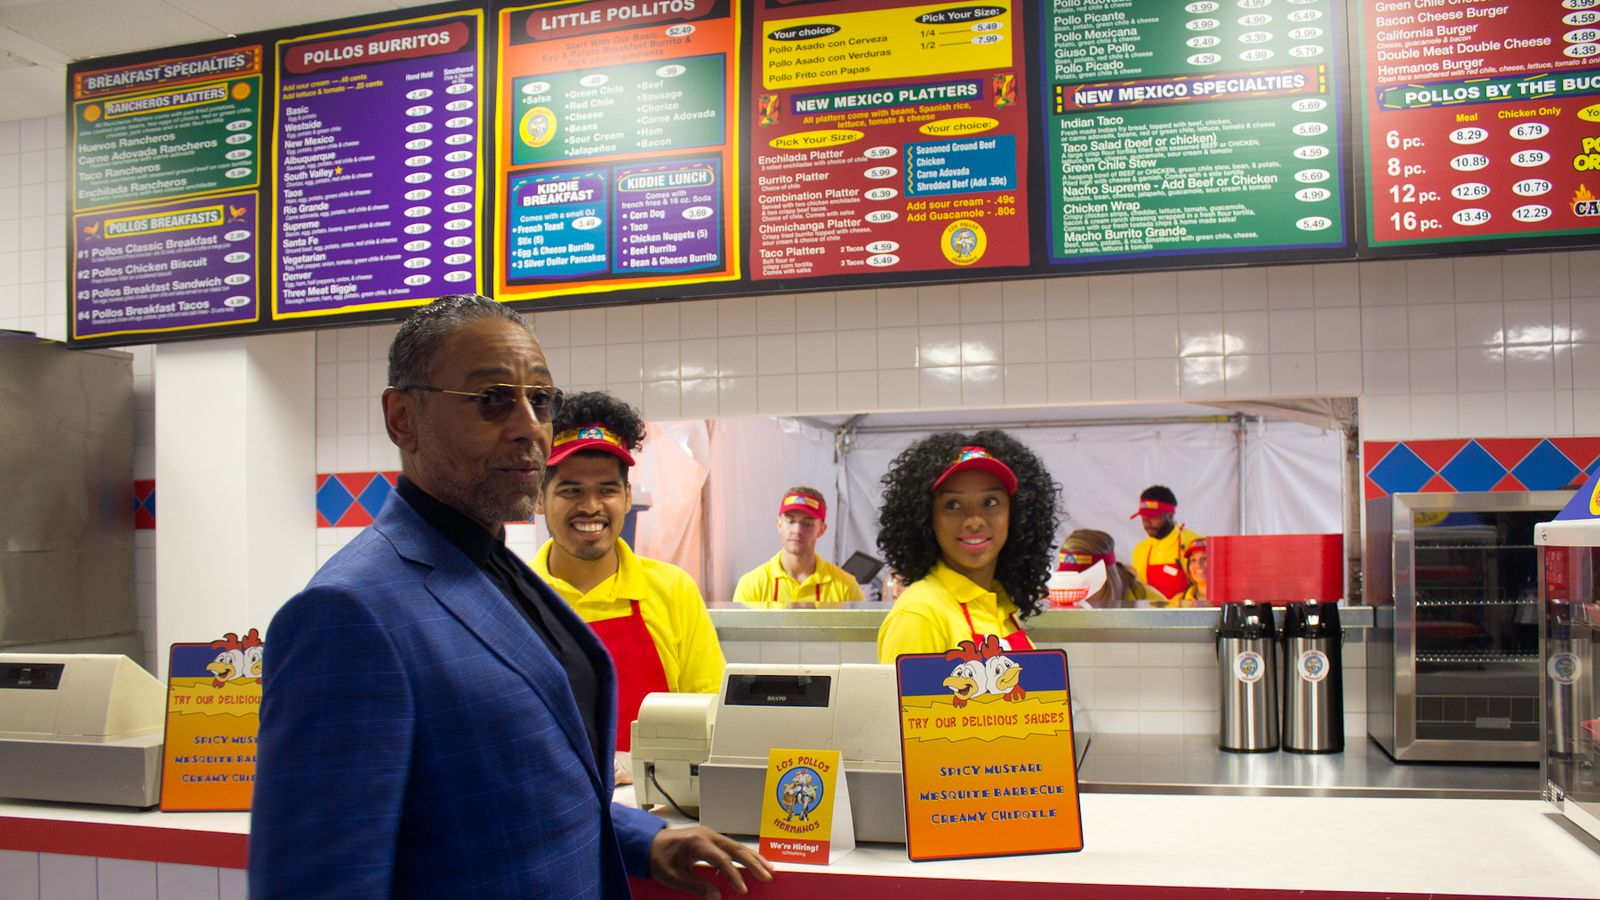 Los Pollos Hermanos from 'Breaking Bad' is popping up in LA this week